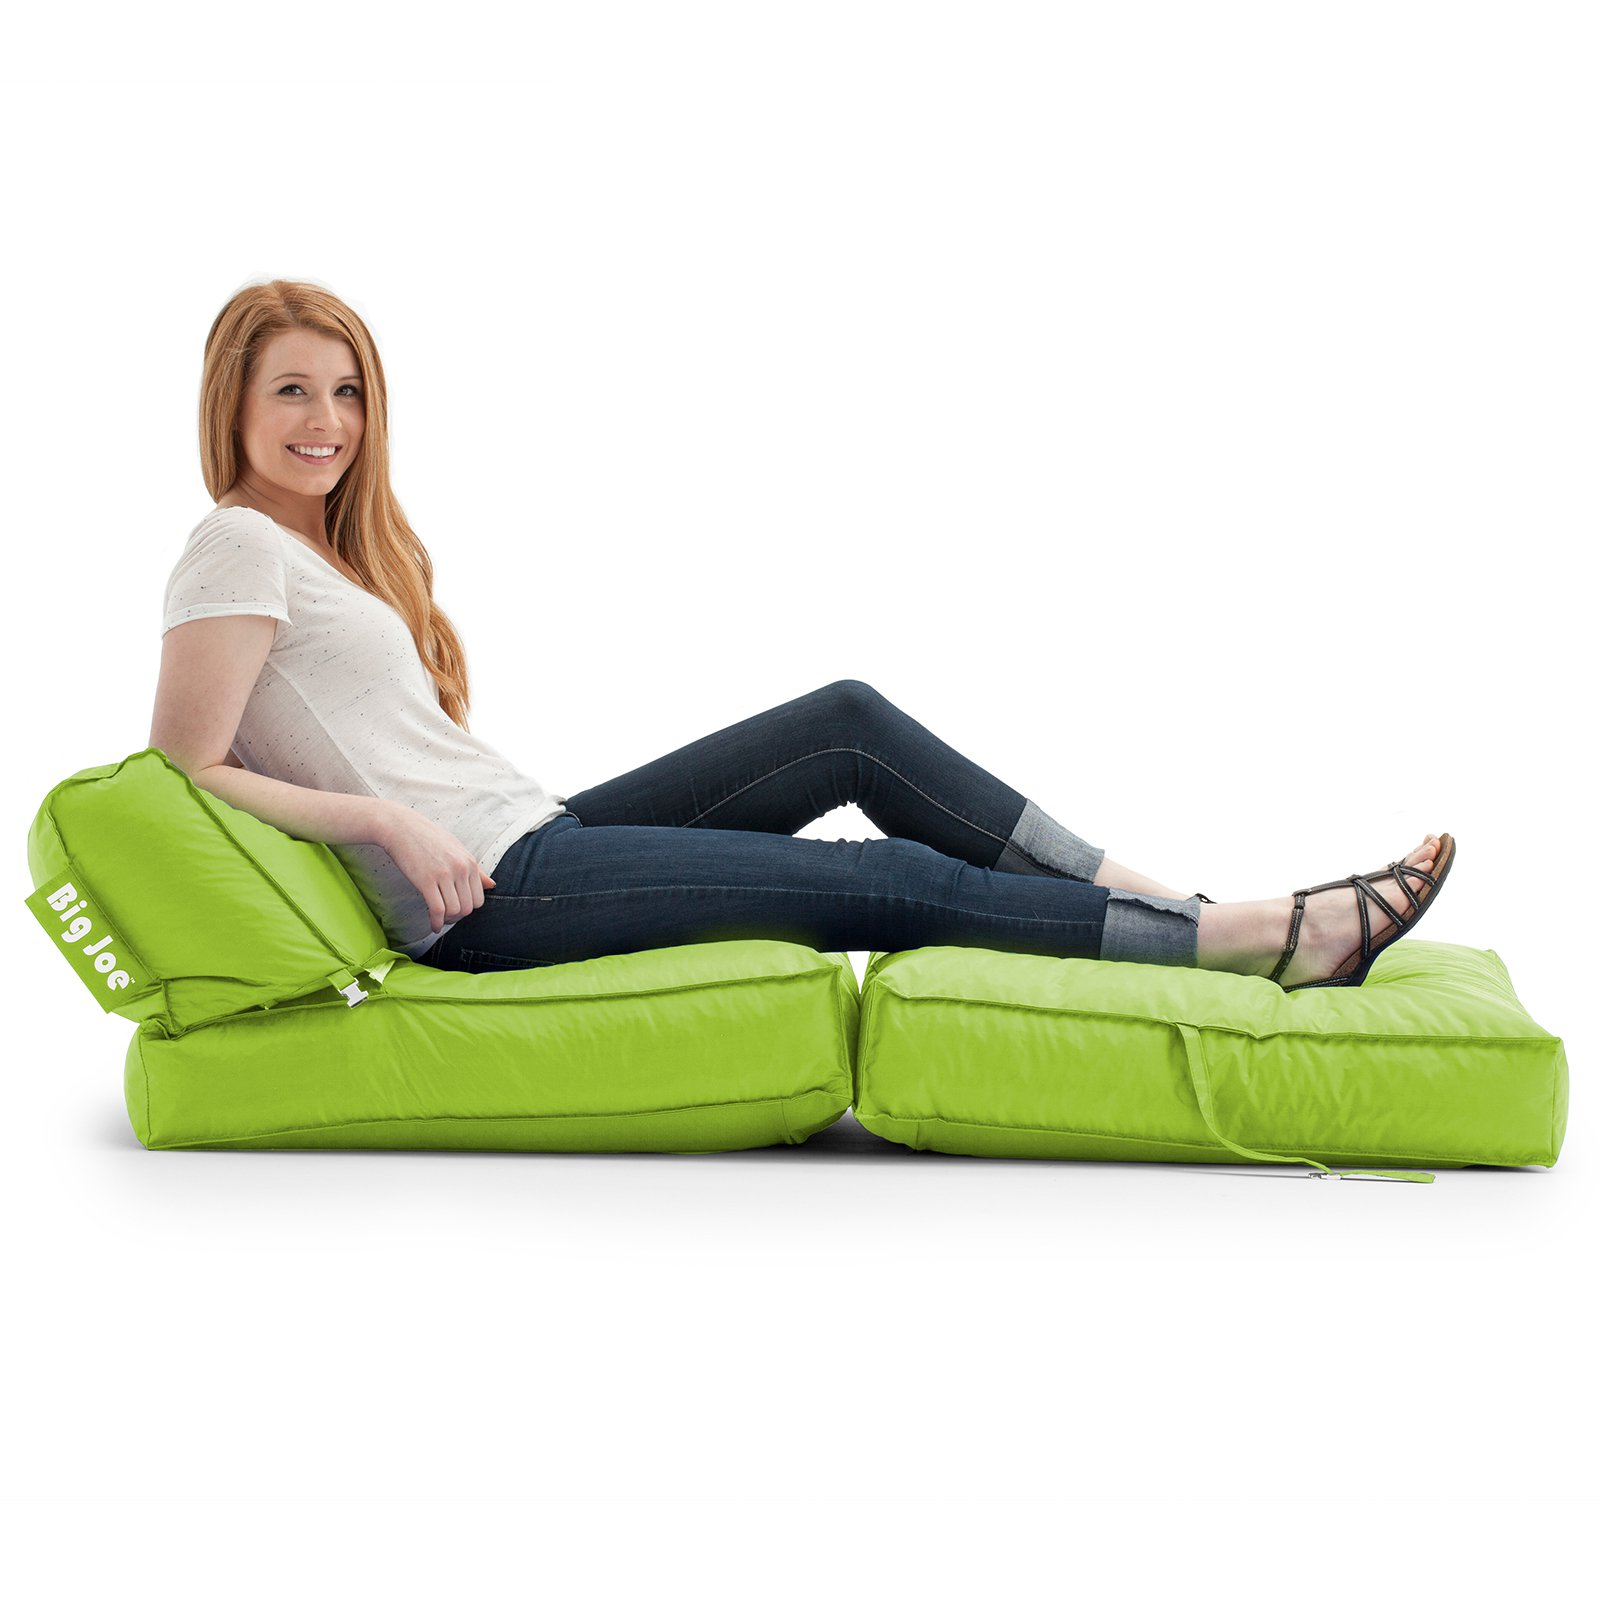 Etonnant Big Joe Flip Lounger Bean Bag Chair   Walmart.com